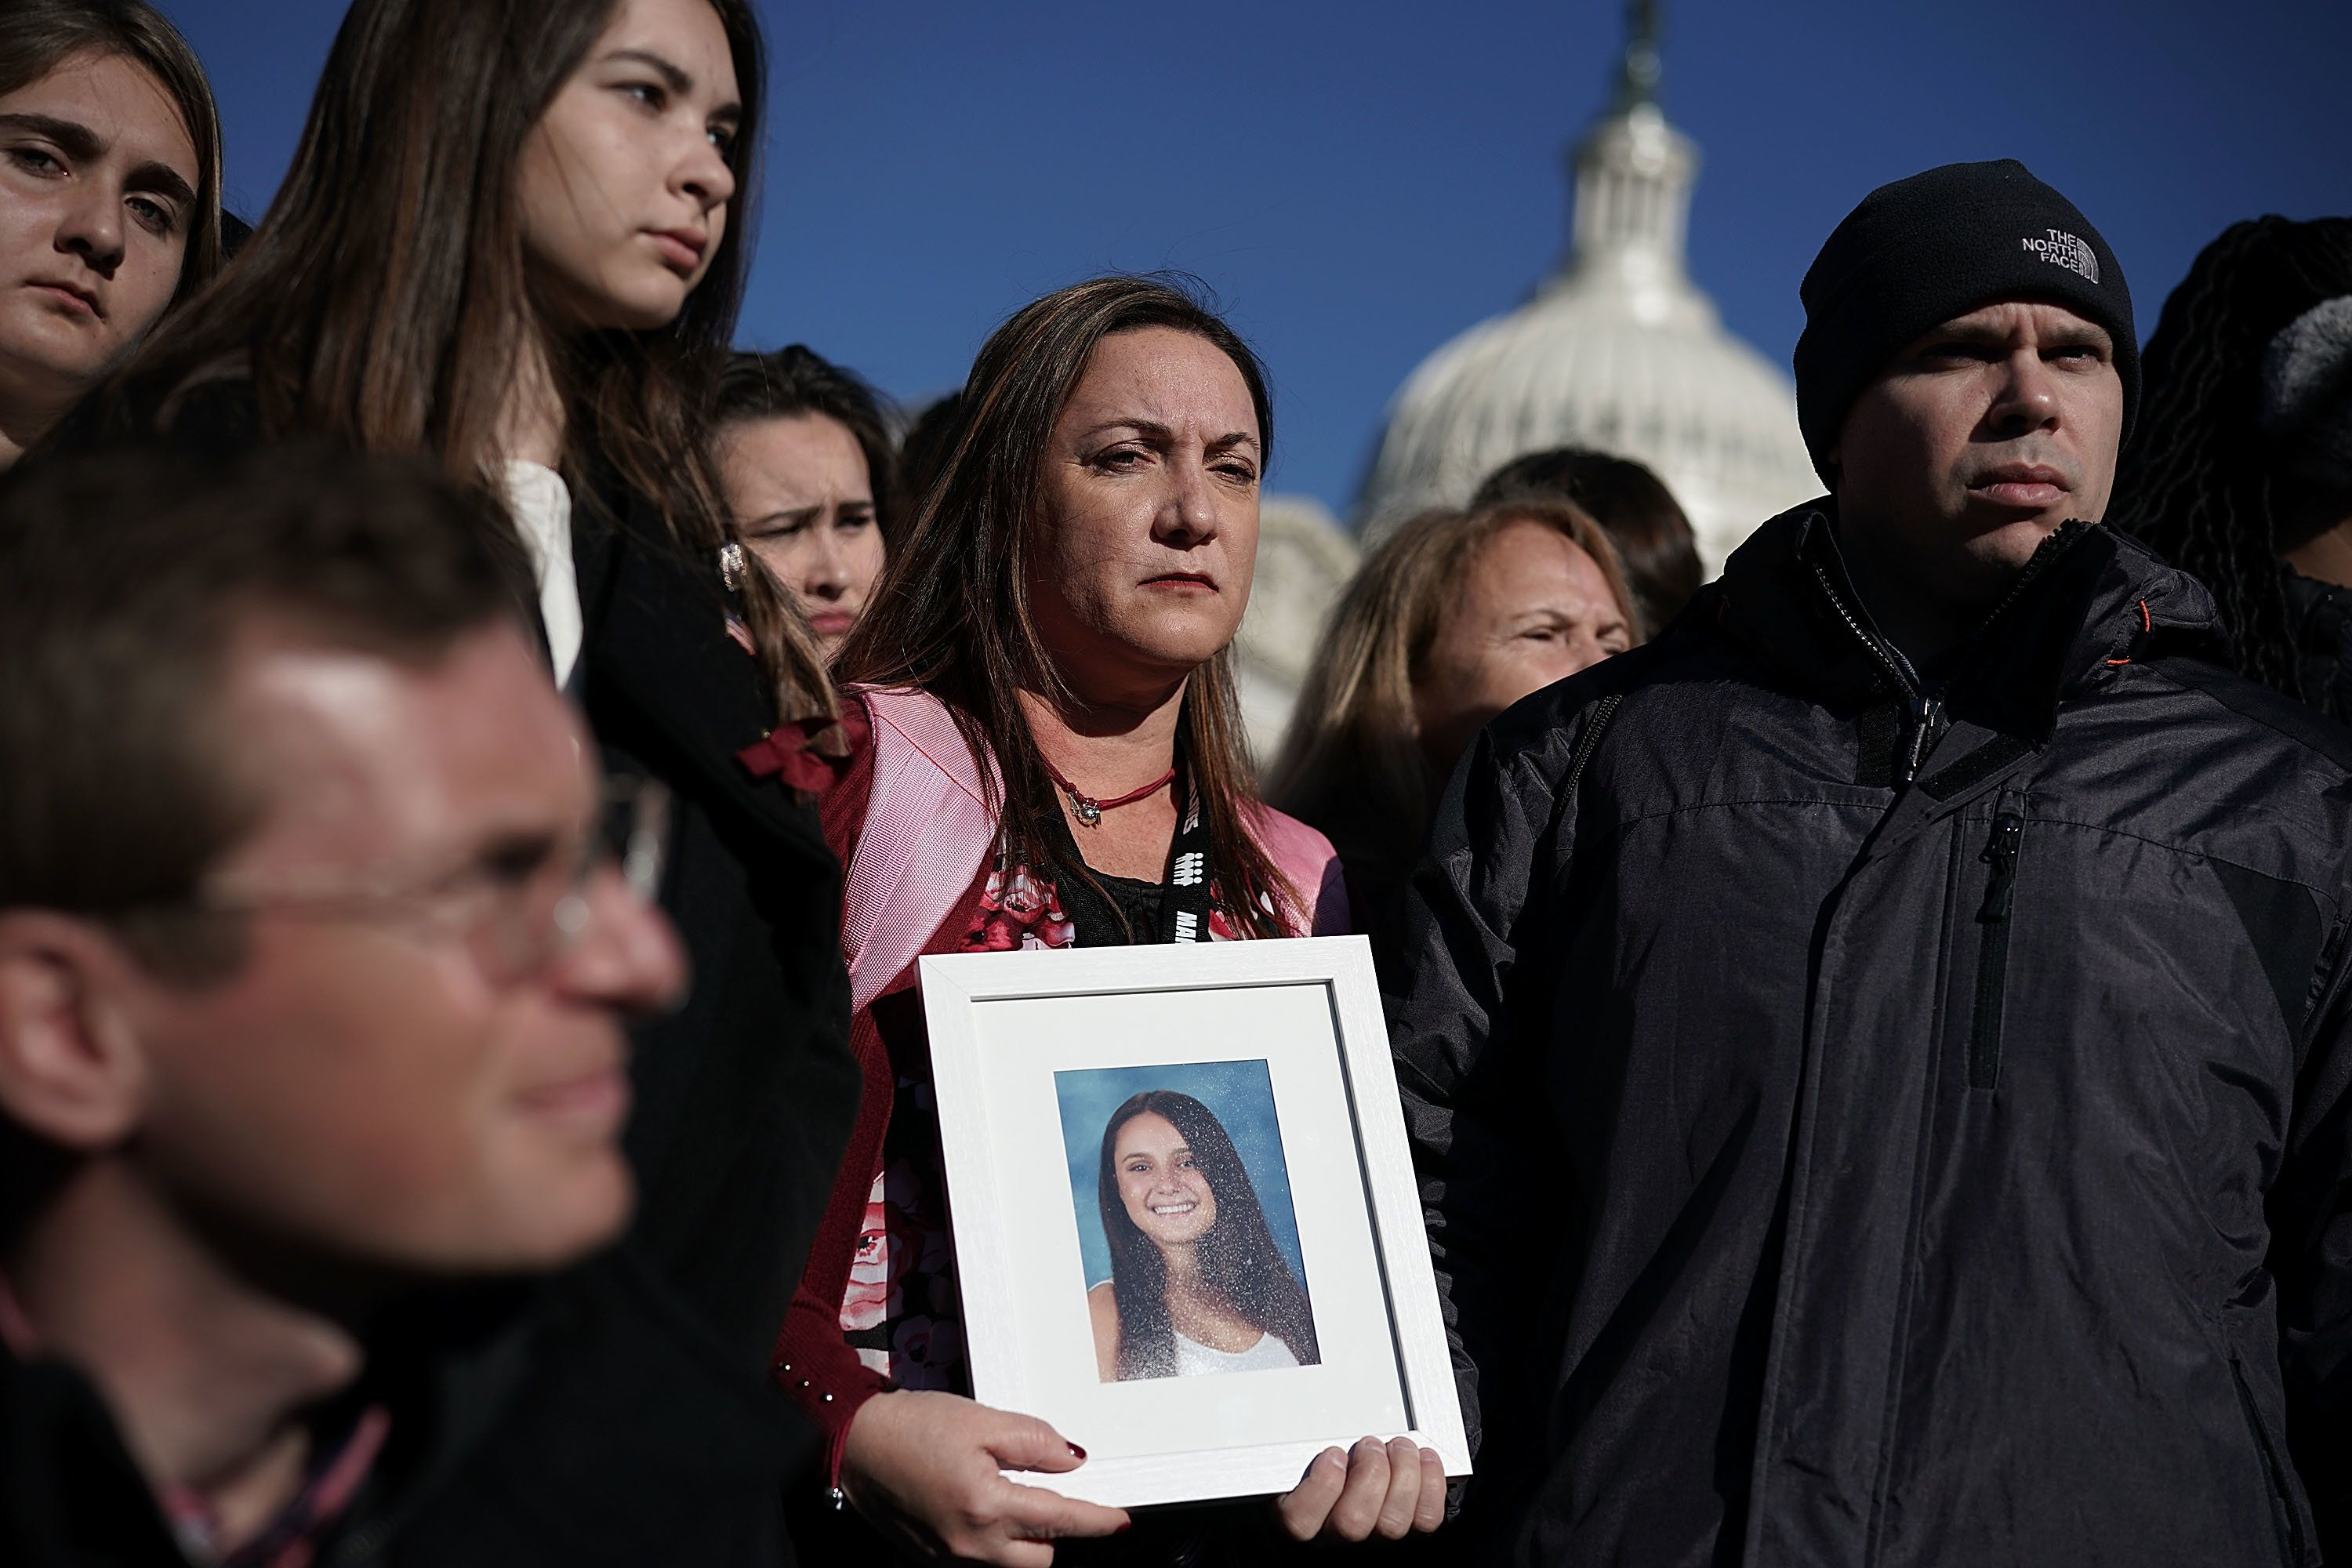 WASHINGTON, DC - MARCH 23:  Lori Alhadeff (C) and her husband Ilan Alhadeff (R) hold a picture of their daughter Alyssa Alhadeff, a Marjory Stoneman Douglas High School shooting victim, during a news conference on gun control March 23, 2018 on Capitol Hill in Washington, DC. U.S. Rep. Ted Deutch (D-FL), Sen. Bill Nelson (D-FL) and Sen. Amy Klobuchar (D-MN), joined by students and gun control advocates, held a news conference 'to demand action on gun safety.'  (Photo by Alex Wong/Getty Images)